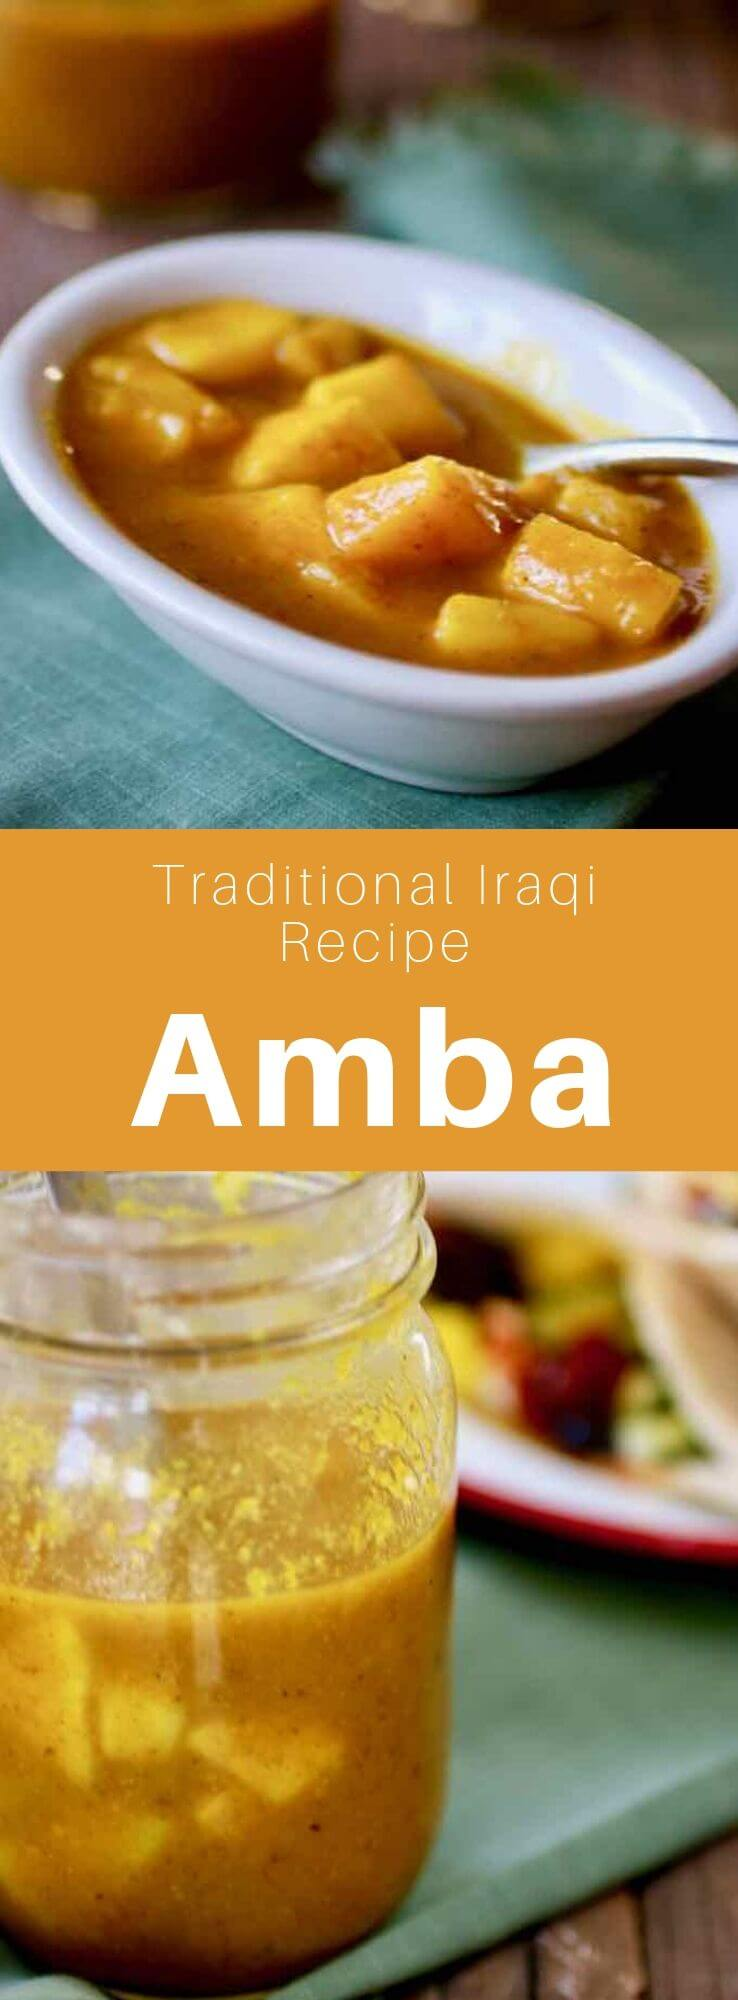 Amba is a sauce prepared with mango, vinegar and spices, which is used as a condiment in Iraqi and Middle Eastern cuisines. #MiddleEast #MiddleEastern #Iraq #IraqiCuisine #IraqiRecipe #WorldCuisine #196flavors